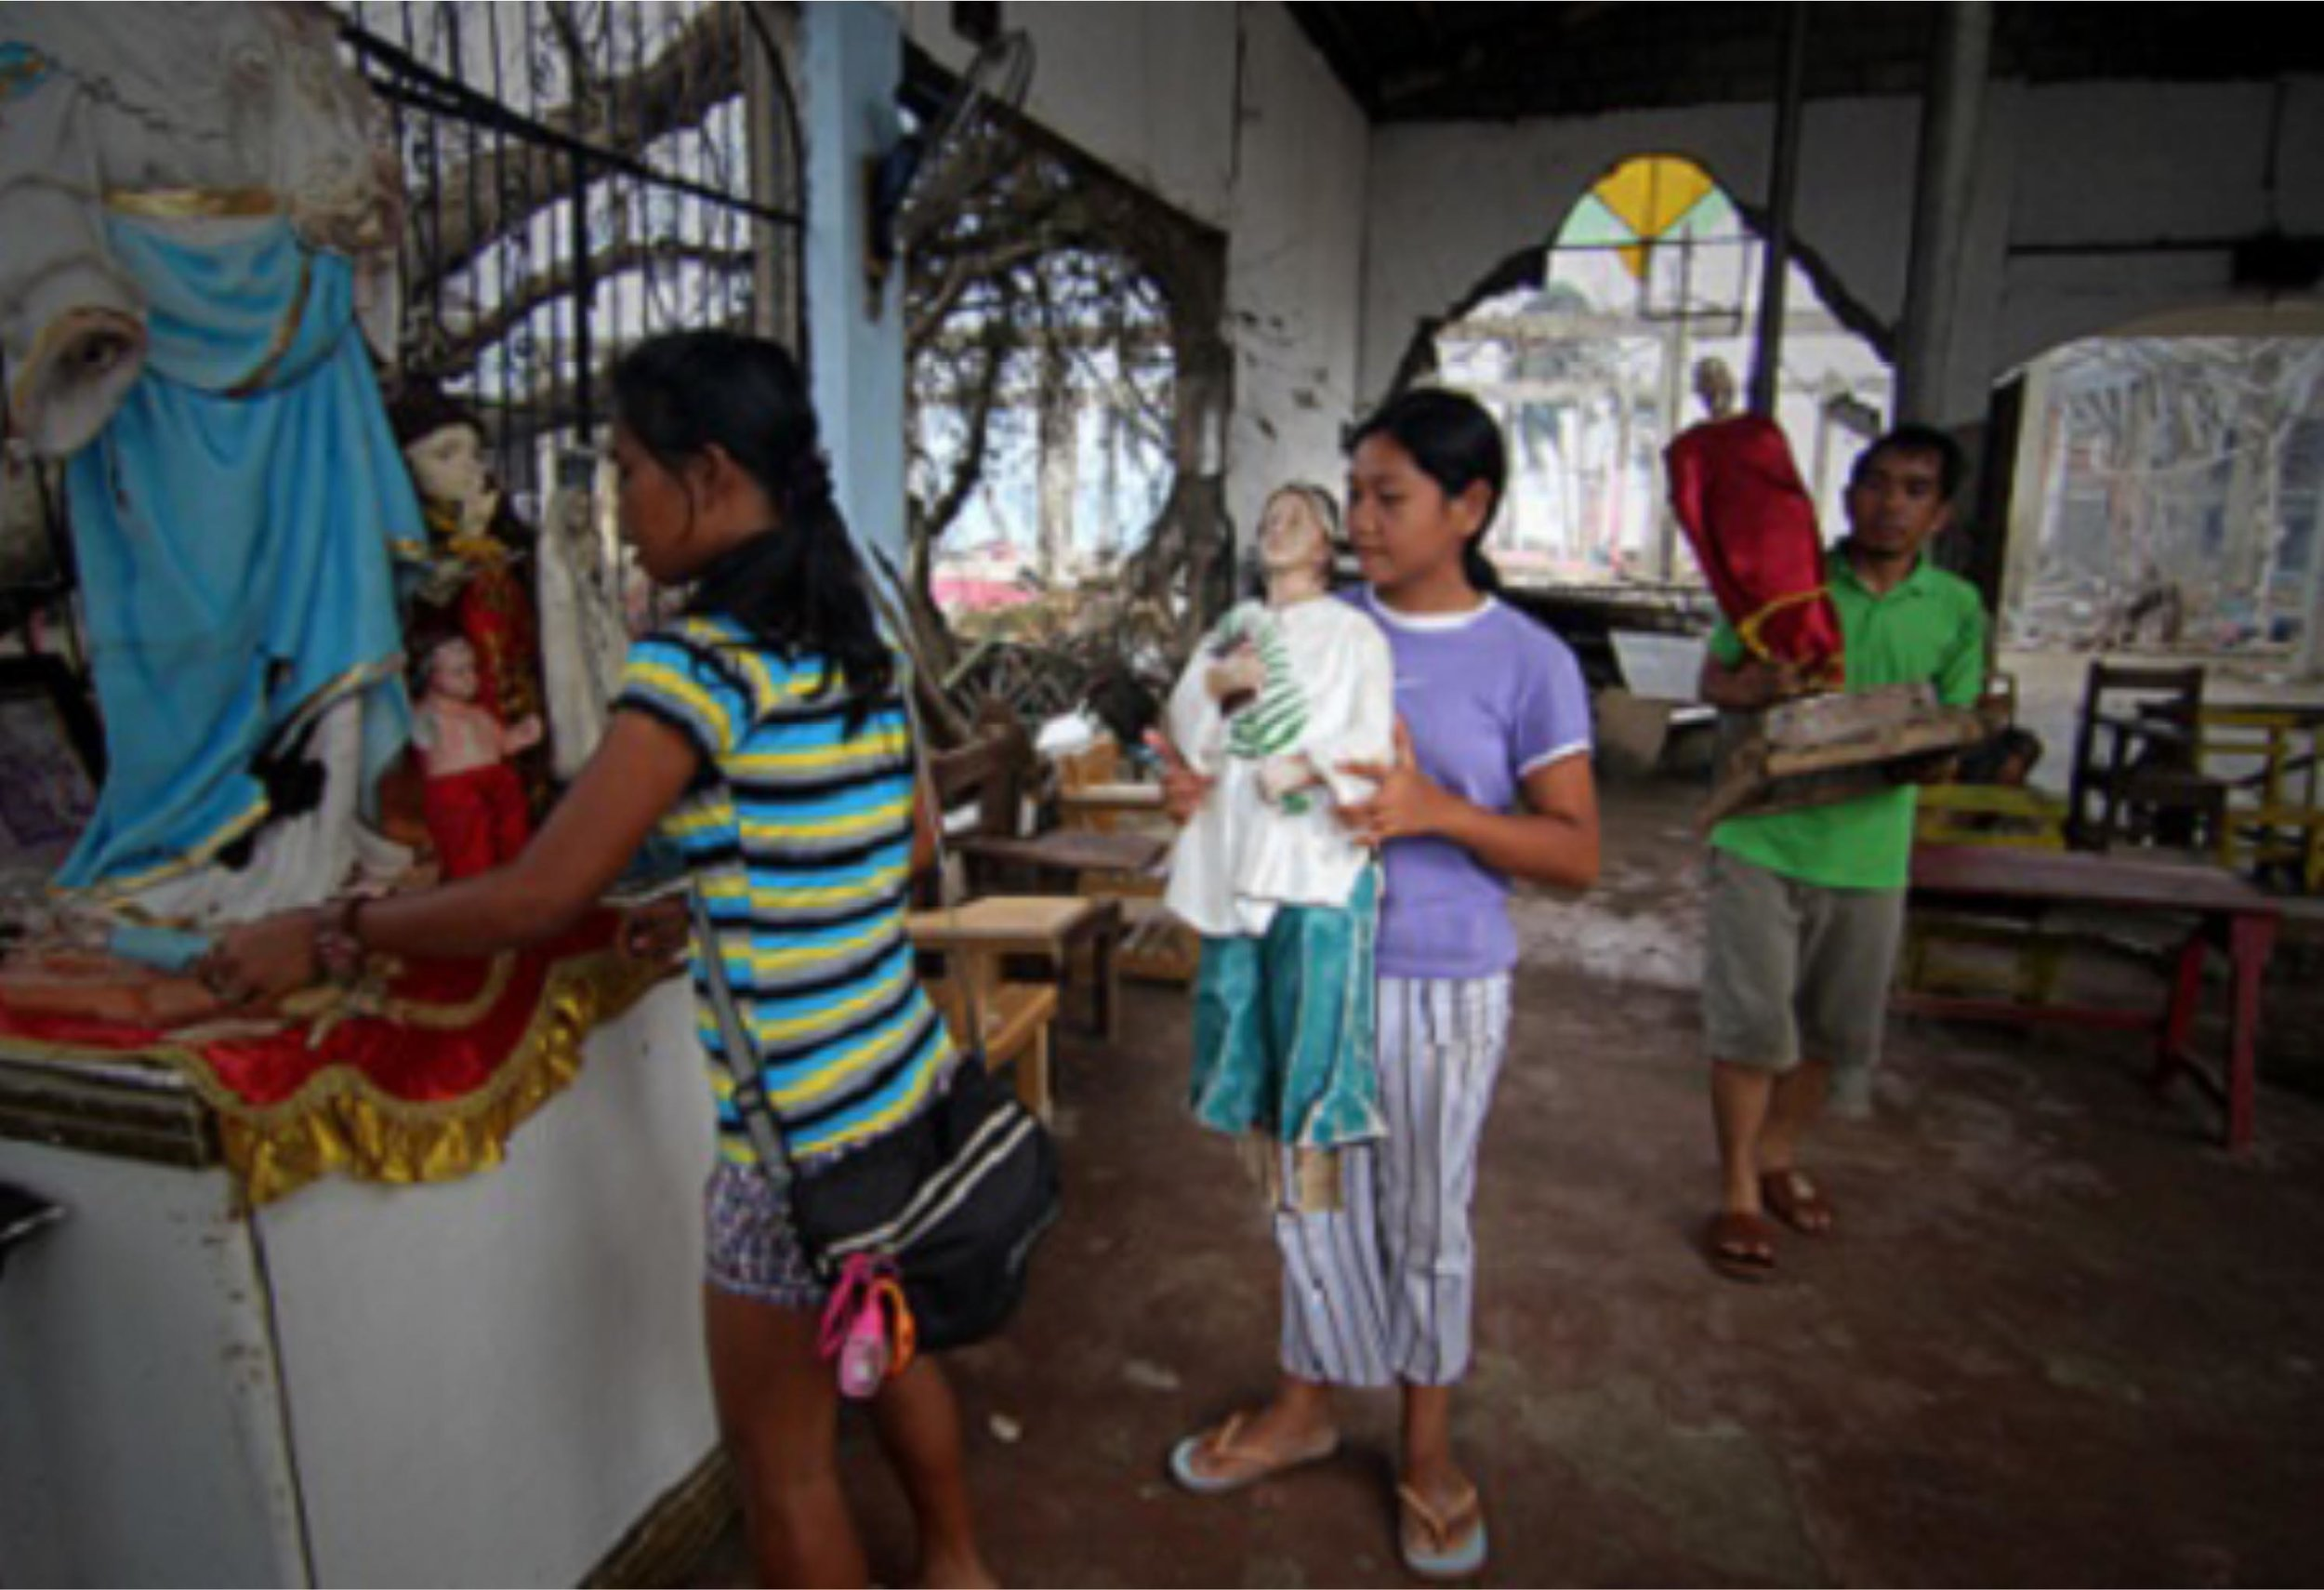 """Buddhist foundation to flnance rebuilding of typhoon-damaged church - The world's largest Buddhist charity, Tzu Chi Foundation, is helping rebuild a church in Tacloban City, Phillipines The show of generosity has been welcomed by the Church. """"We are very happy and thankful for the great help and assistance extended by the Tzu Chi Foundation. Indeed, love, concern, generosity and kindness go beyond religion,"""" said Fr Amadeo Alvero, a Palo archdiocese spokesman.The Foundation is donating $670,000 for the reconstruction of the Santo Nino parish church. """"With their generosity and love we will be able to rebuild our church soon,"""" the priest said. """"We allow people of different faiths to be connected with each other, bound by the same spirit of love, compassion, and understanding,""""The priest said the parish's association with the Foundation started when the charity offered a cash-for-work program to typhoon victims. The group later set up tents for displaced families in the church's courtyard and extended financial assistance to churches and parishes in the area.Once completed, the new Santo Nino church will have a state-of-the art design that will """"withstand the wrath of nature,"""" Opiniano said. As many as 90 percent of Catholic churches in the central Philippine provinces of Samar and Leyte were destroyed by the super typhoon last November that killed some 8,000 people and left about four million homeless."""